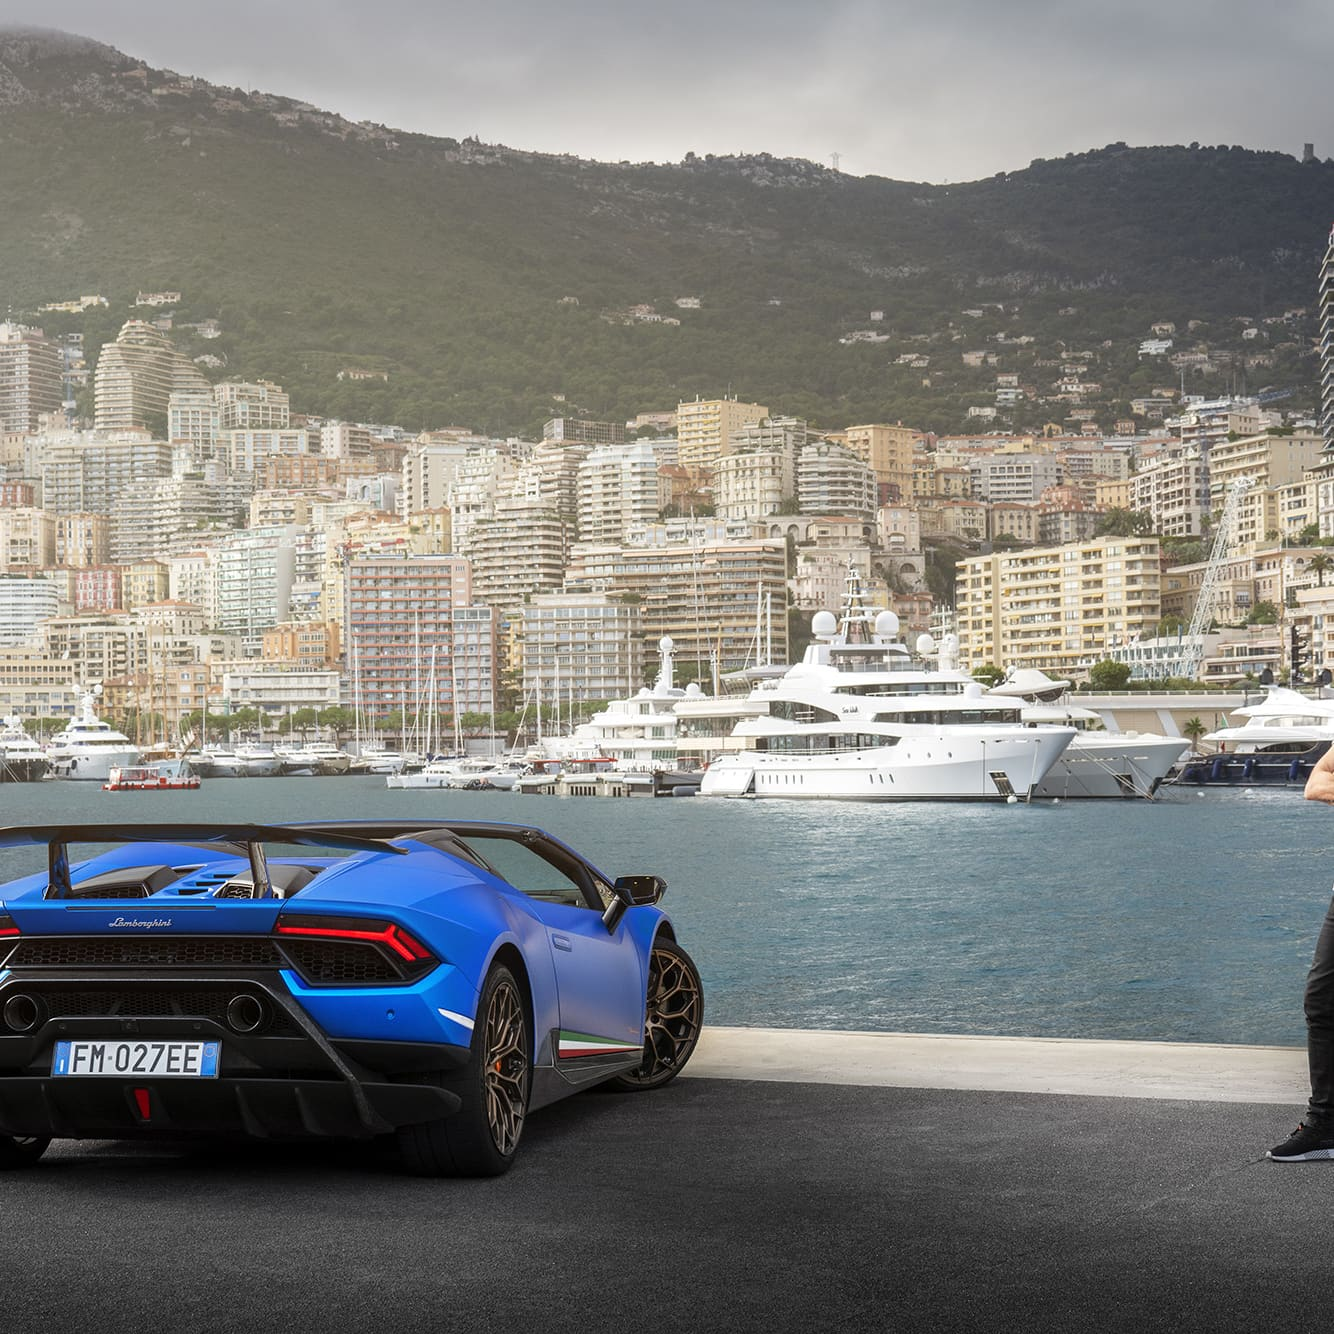 Whether Lamborghini Huracán Performante Spyder is running or not, one getsimpressed by it.